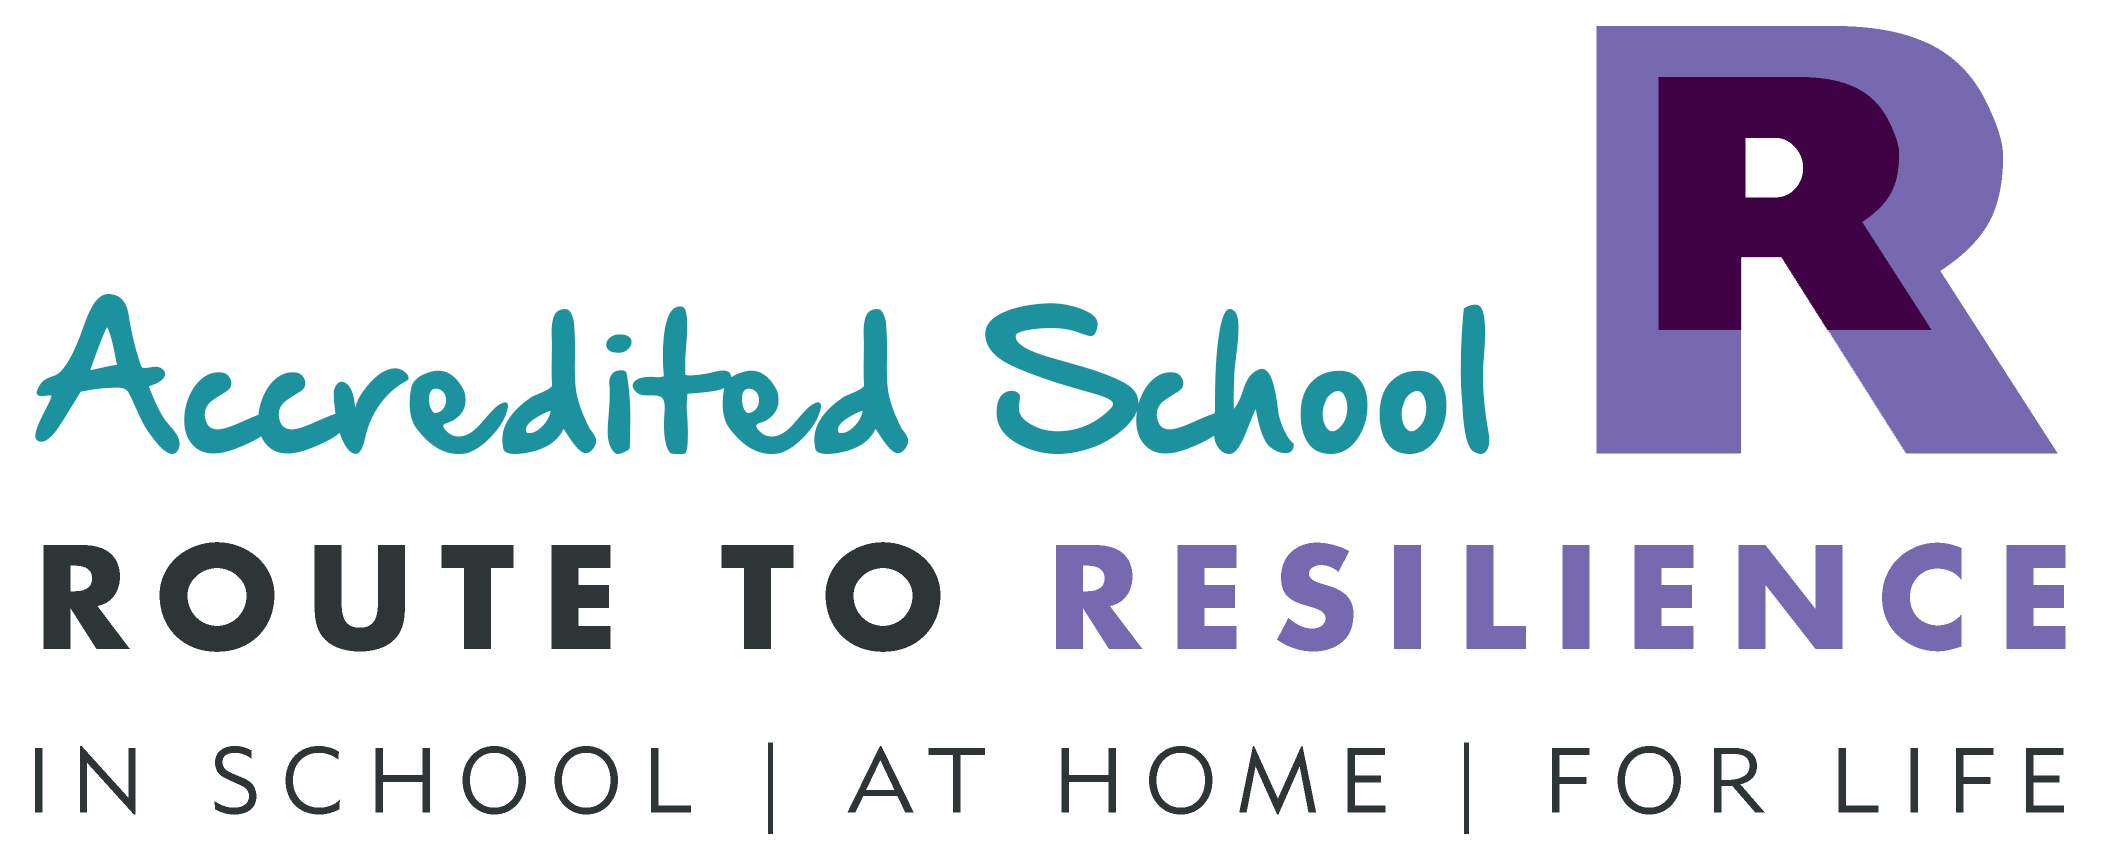 Accredited School - Route to Resilience